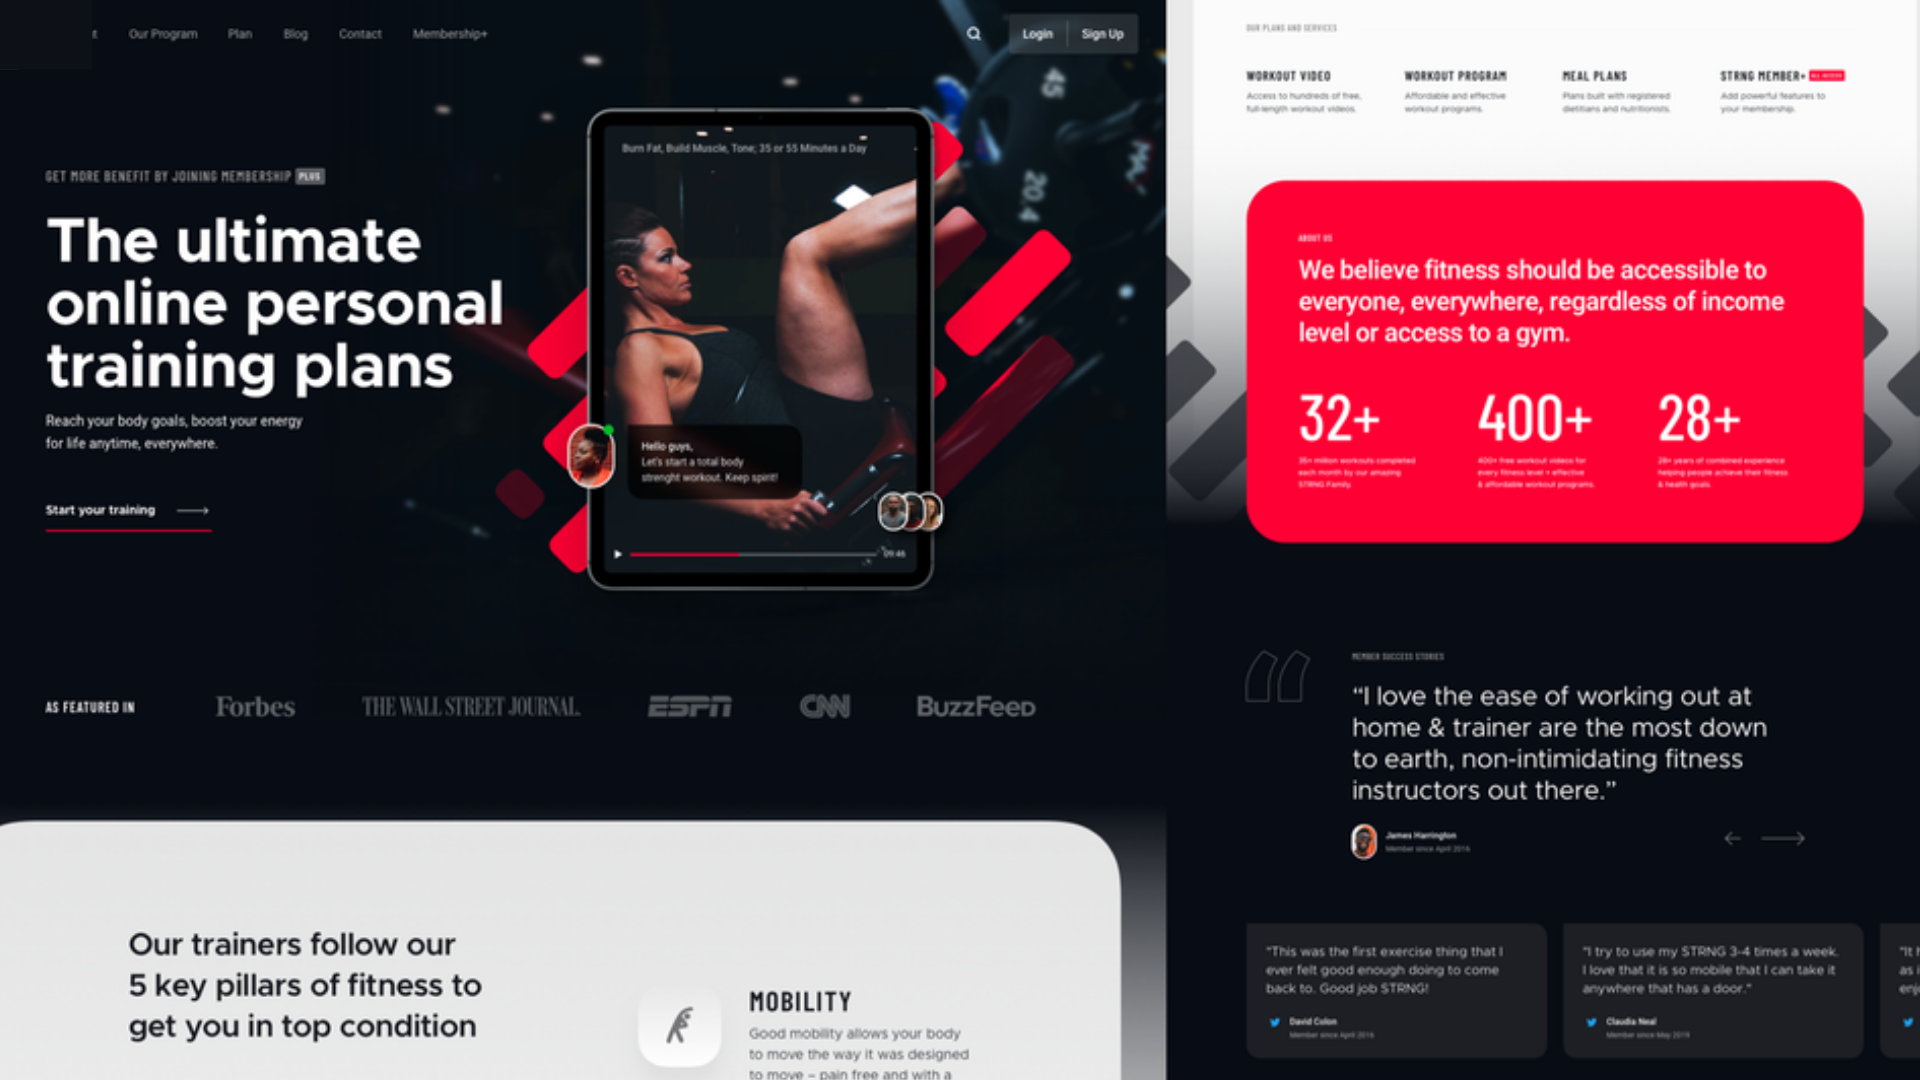 Website for Fitness Influencer by InfluenceBLU